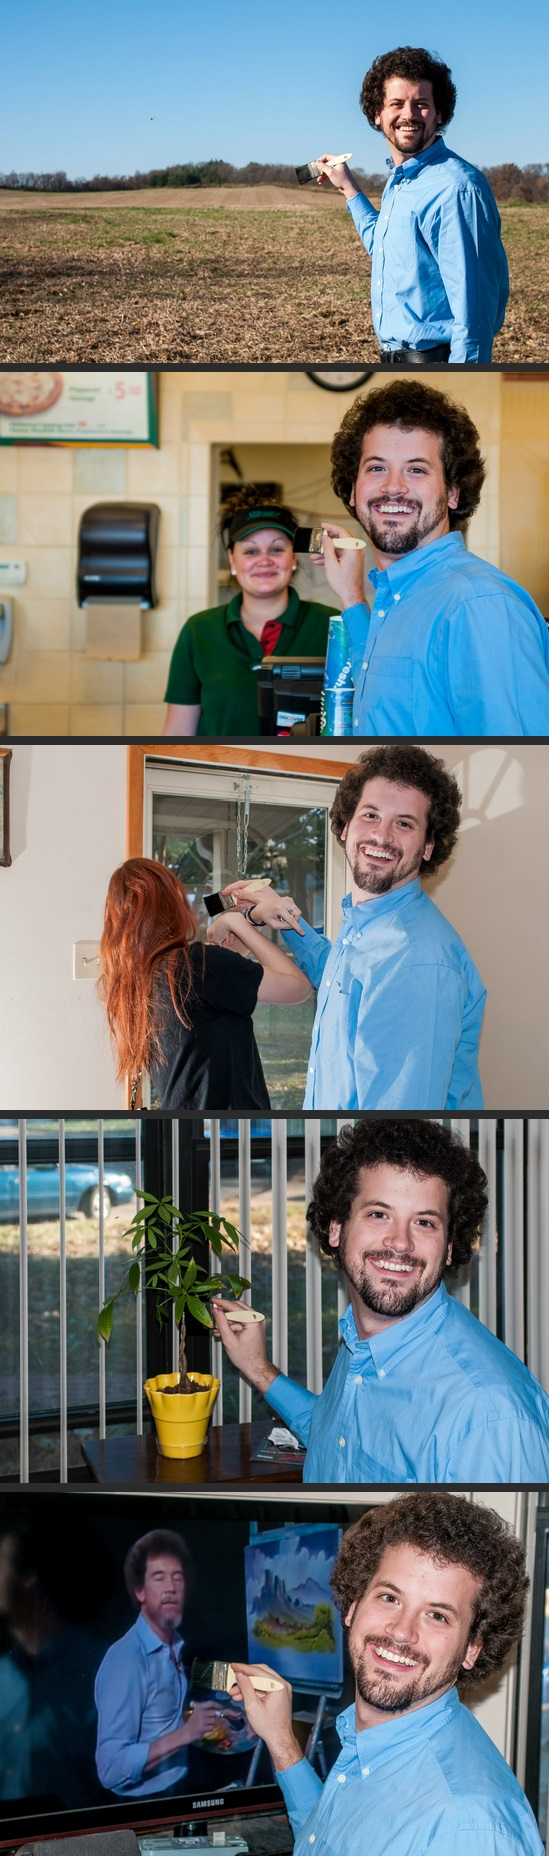 cosplay-bob-ross-costume-01